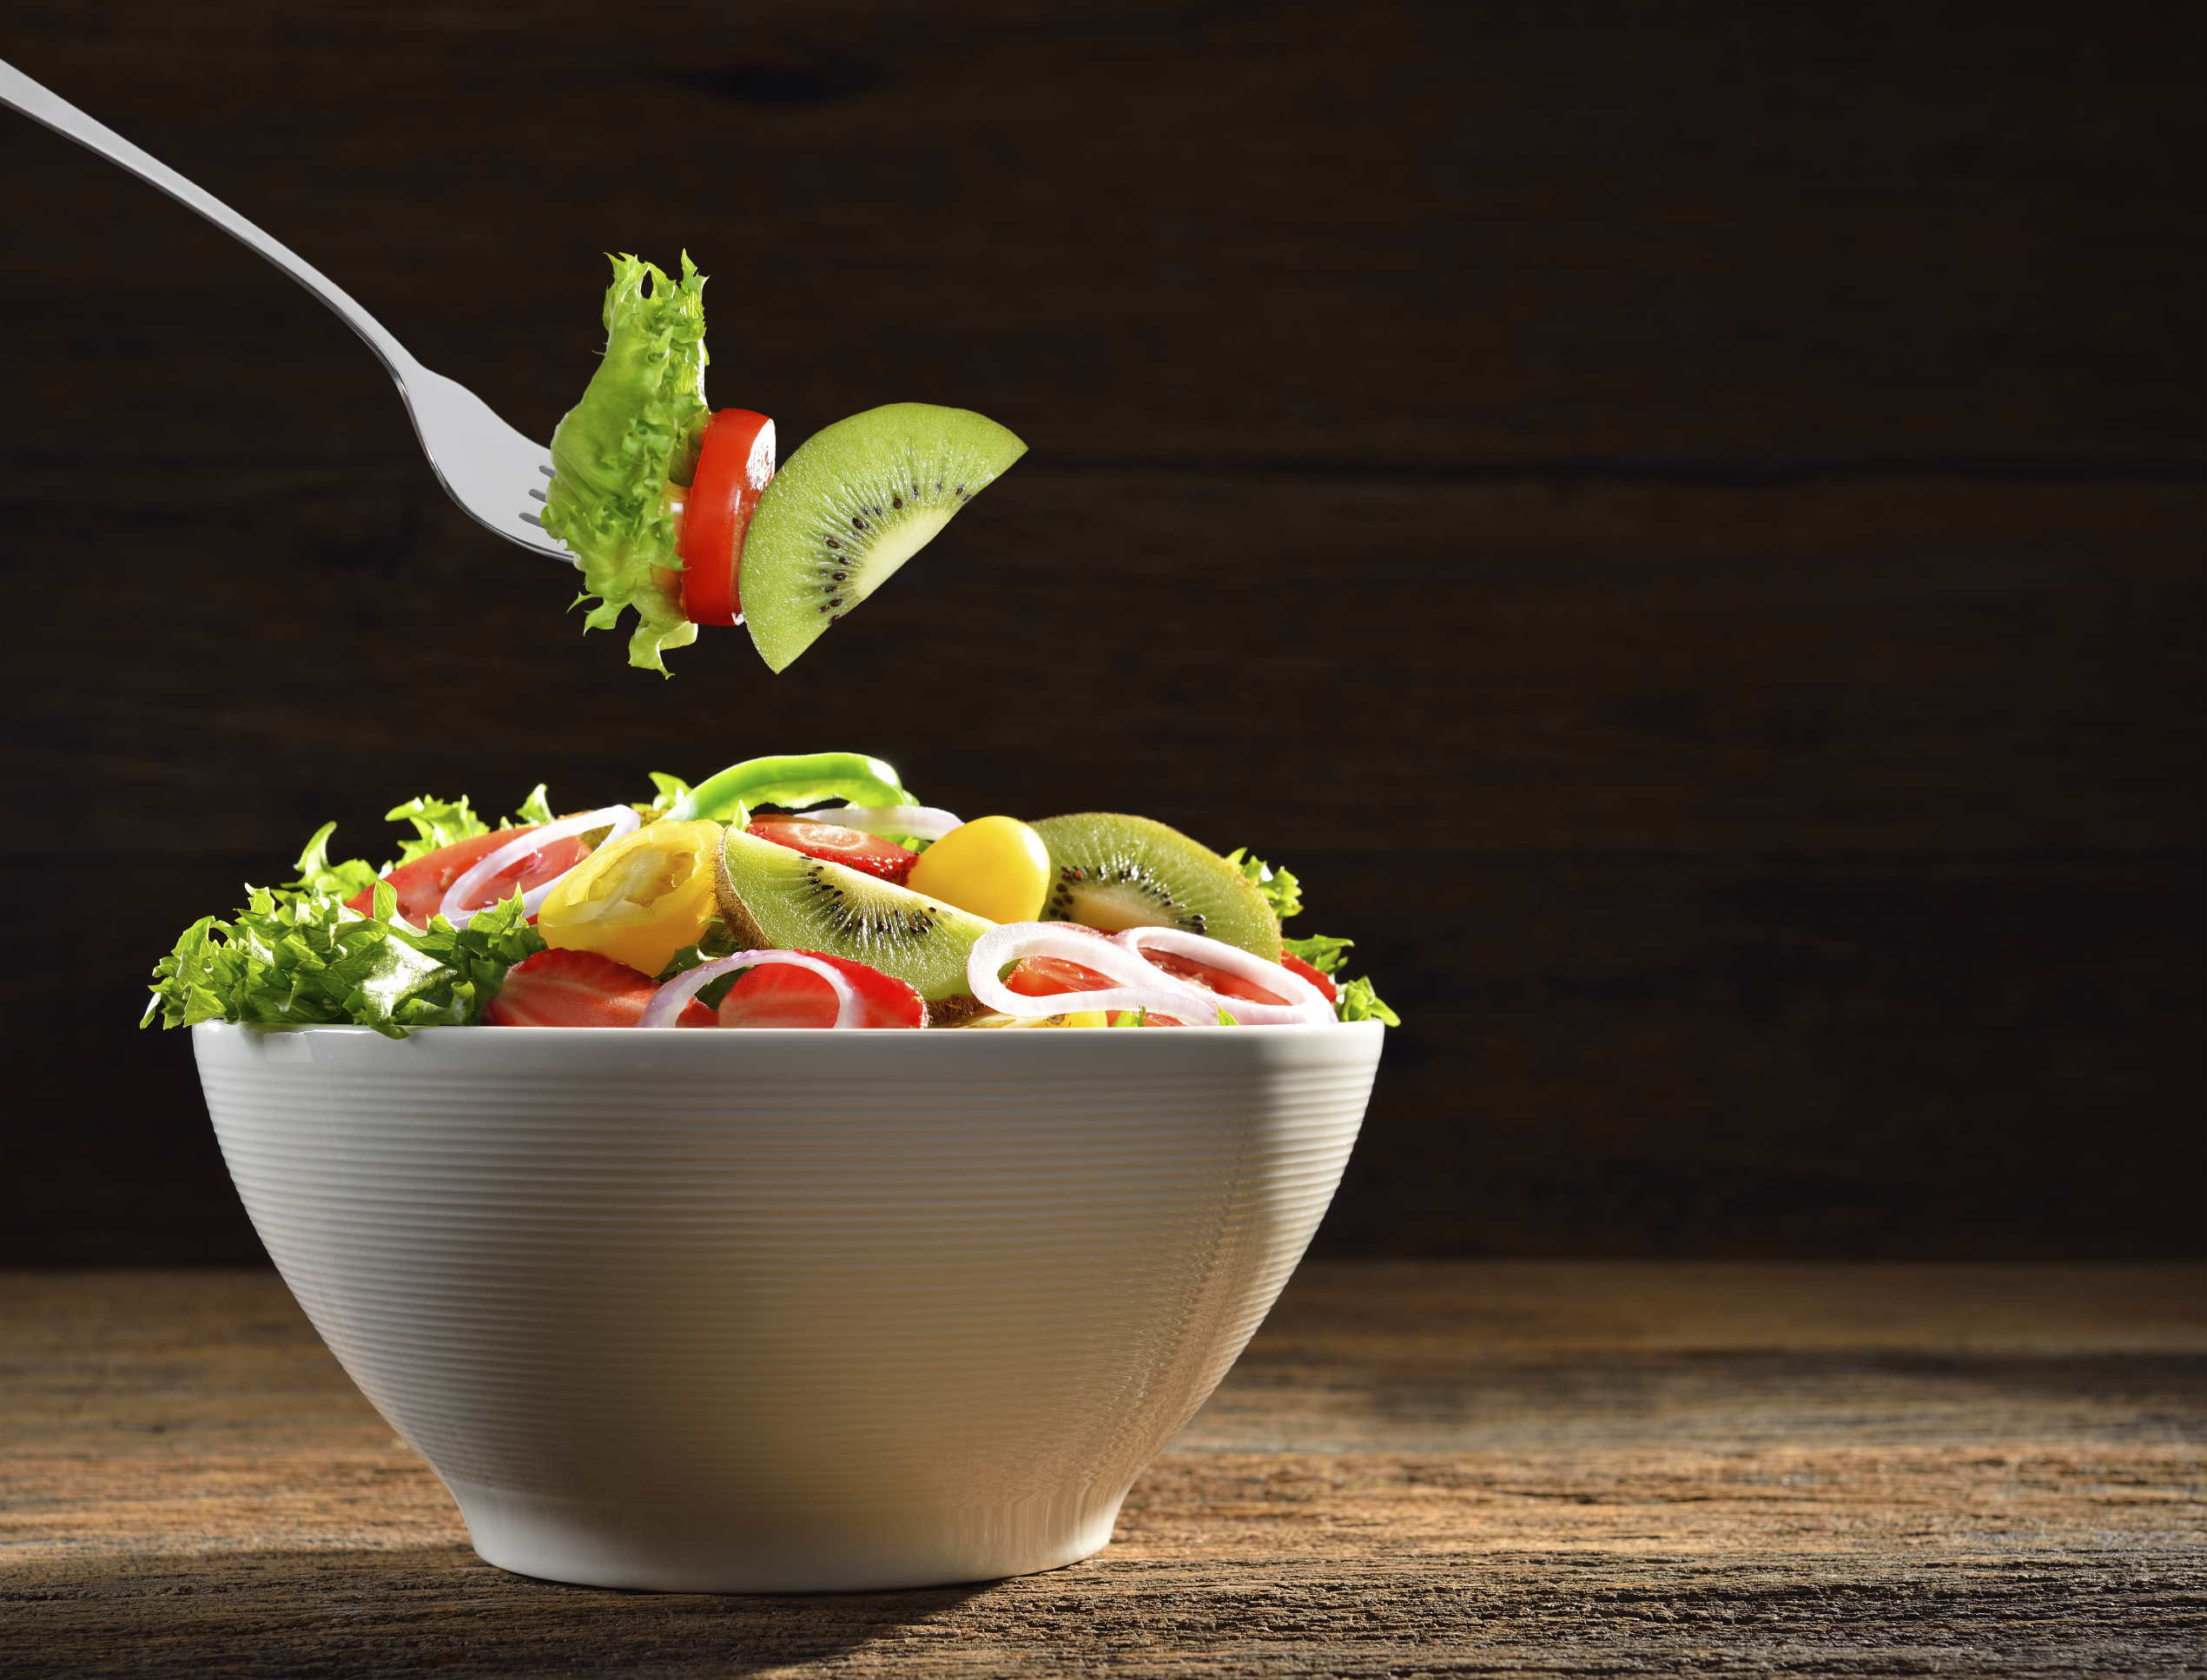 Small Changes in Food Choices Can Make a Big Difference (Video)